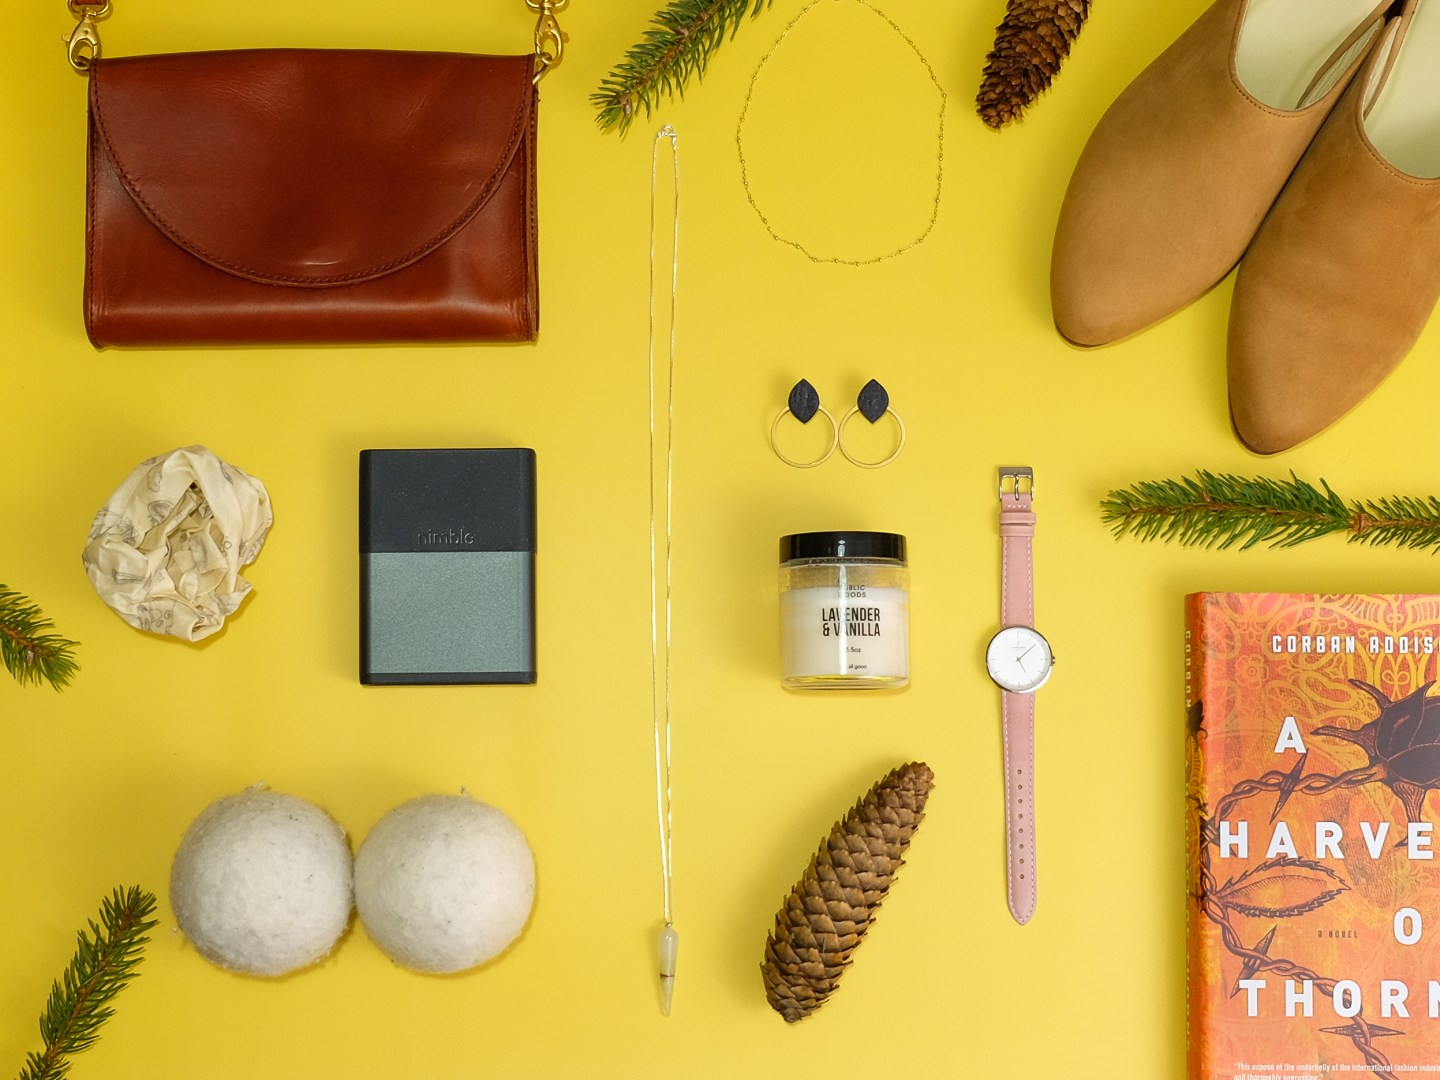 sustainable holiday gift guide 2020 - fair trade, eco-friendly, and ethical presents